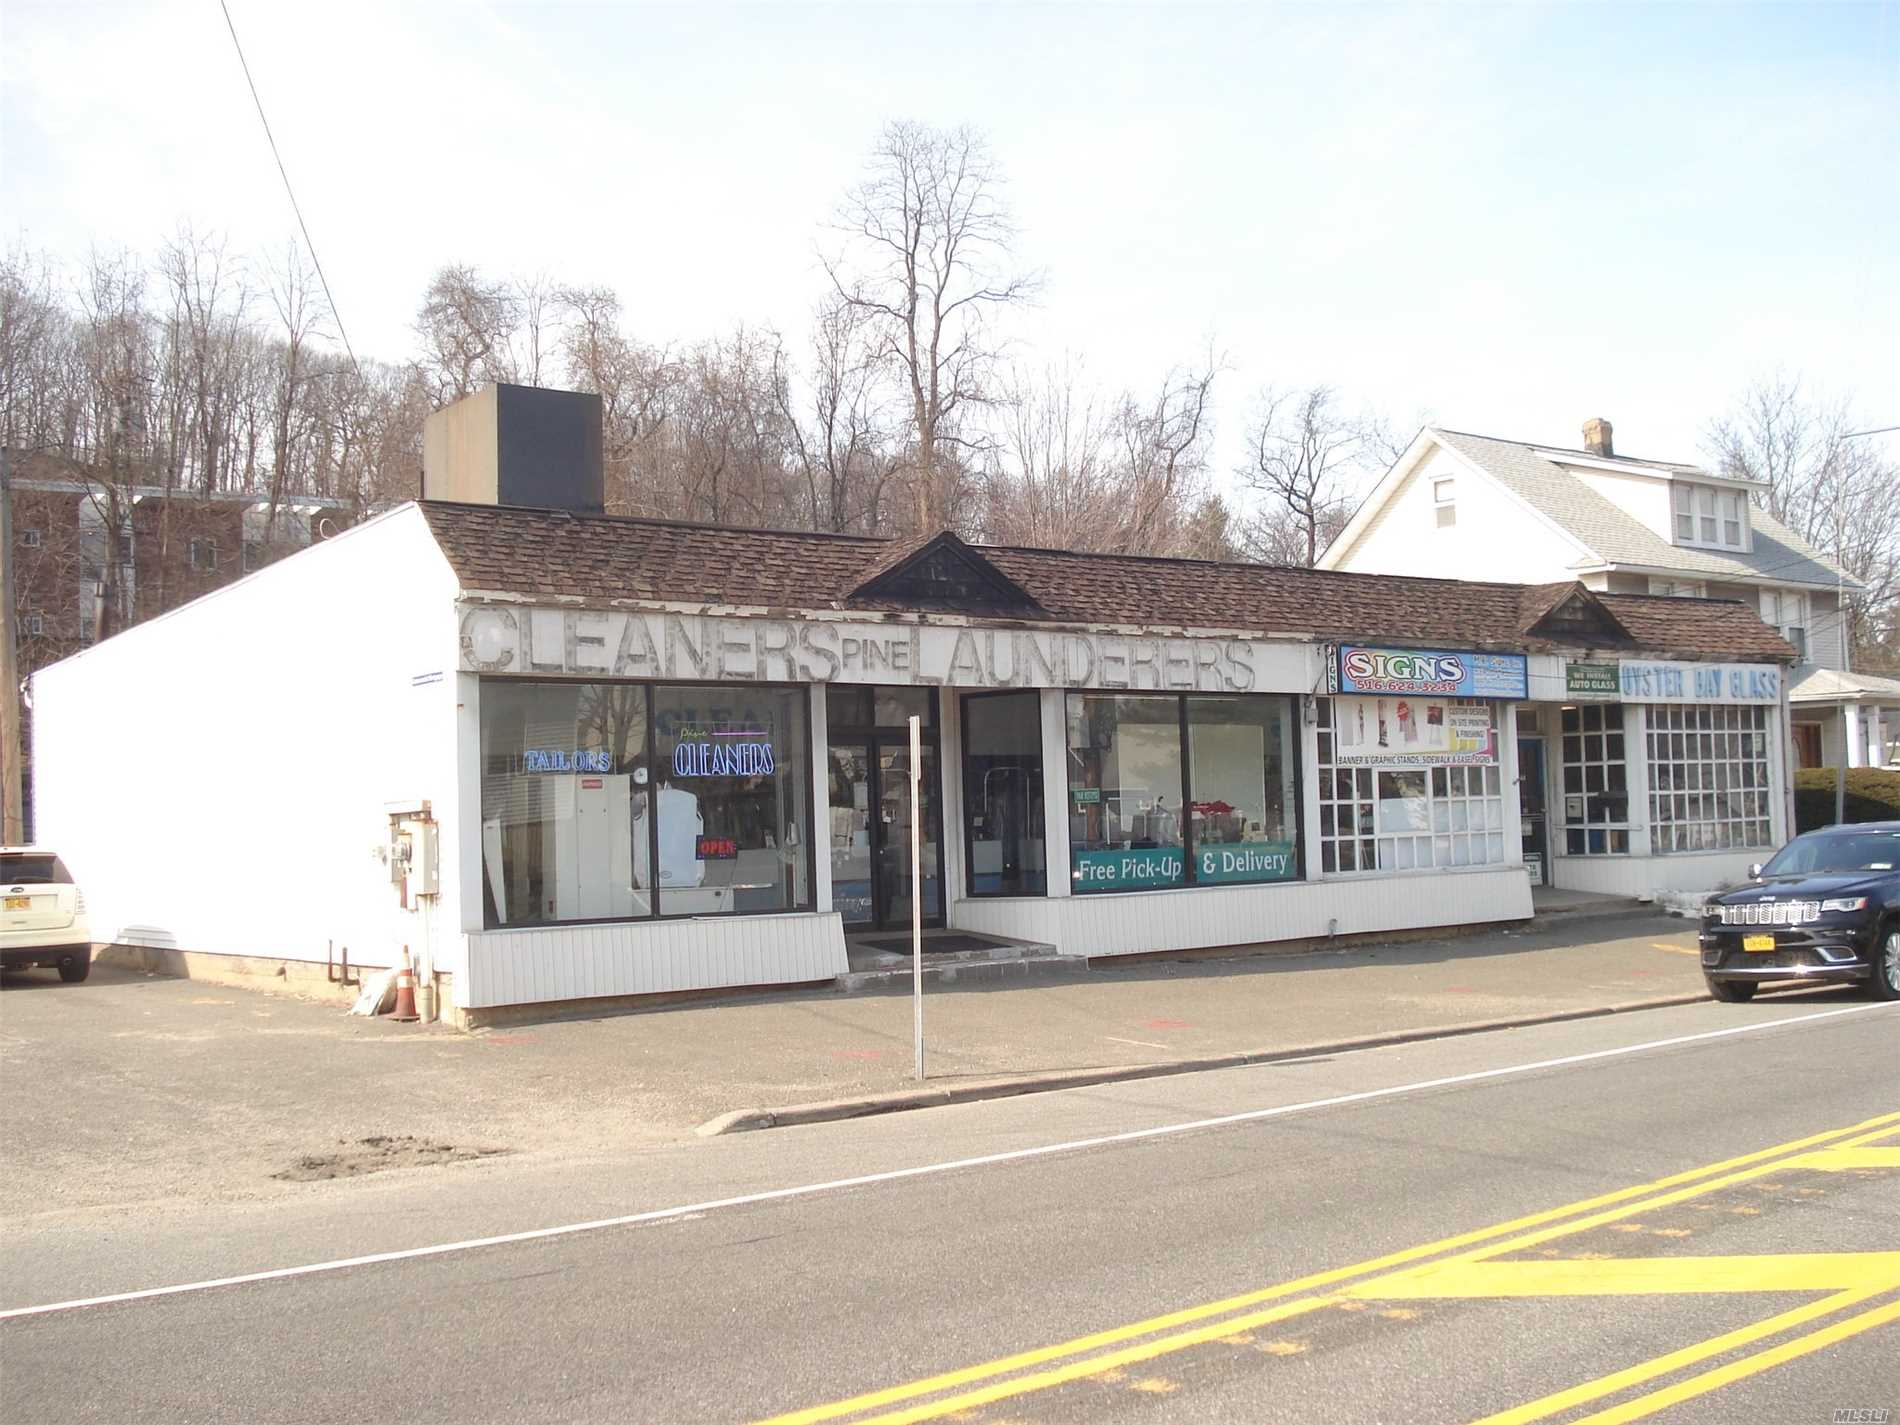 Large Multi Building Commercial Property for sale. 260 feet frontage on N/S Rt. 106, 150 Ft. depth. 39, 000 Square feet zoned Business GB. Property comprised of 3 Retail Stores, 2 Auto Shops, 2 Family Home, and 1 Family home.Survey, Income and Expenses furnished upon request.